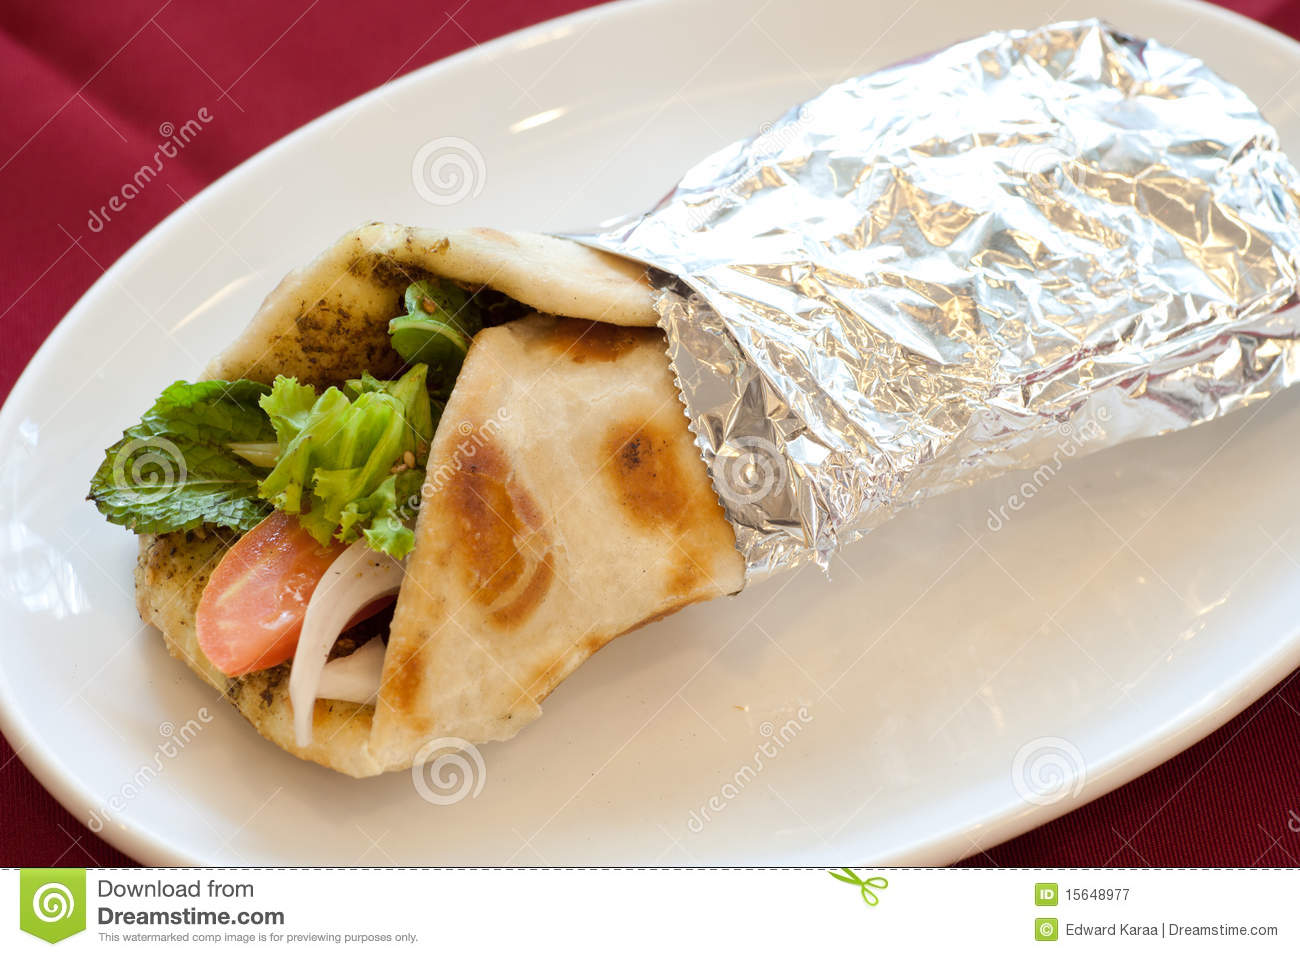 Manouche lebanese food stock image image of pizza for About lebanese cuisine